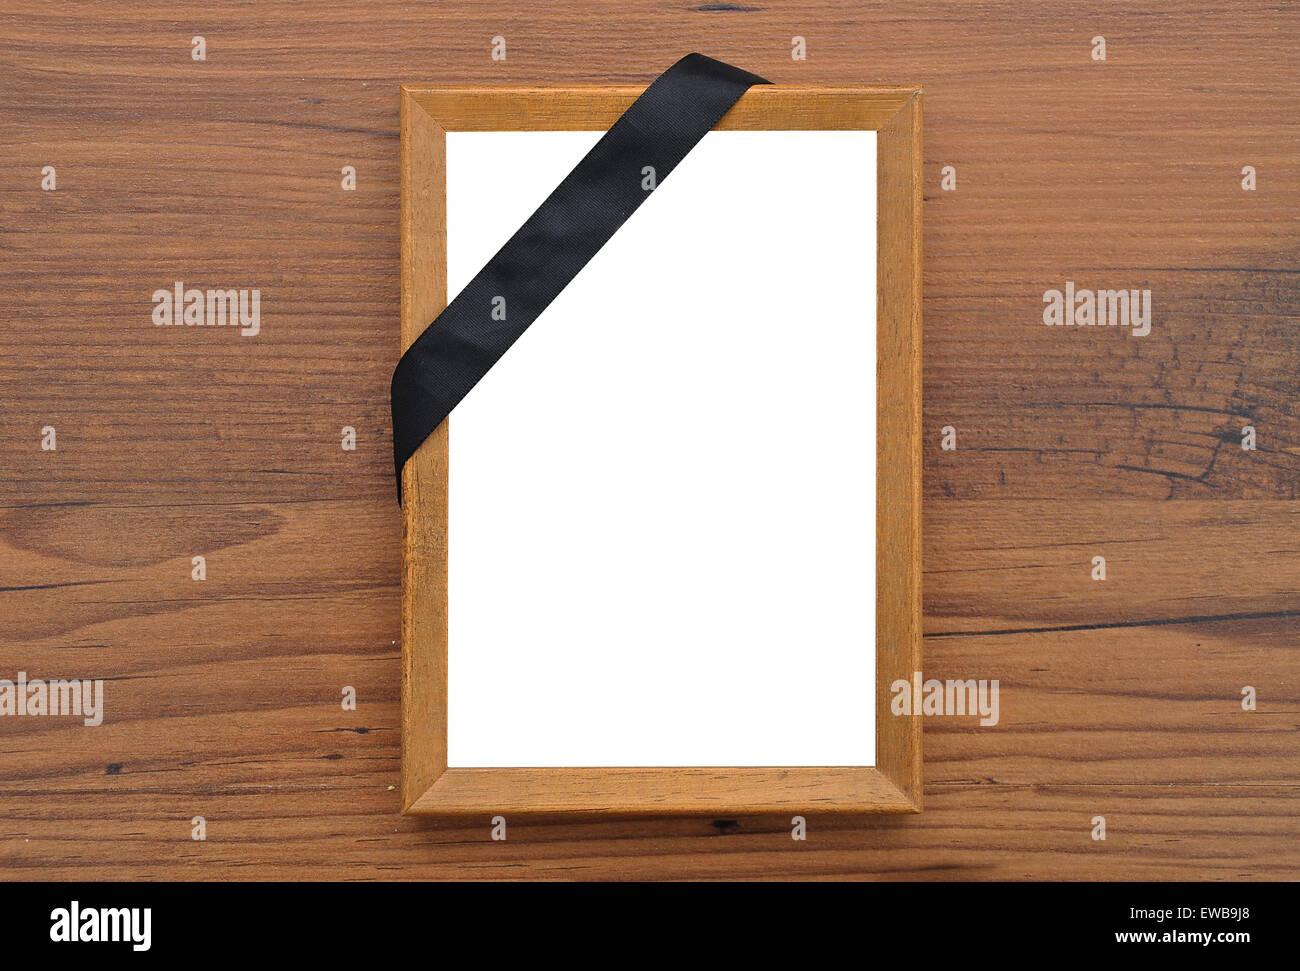 Band Frame Stock Photos & Band Frame Stock Images - Alamy